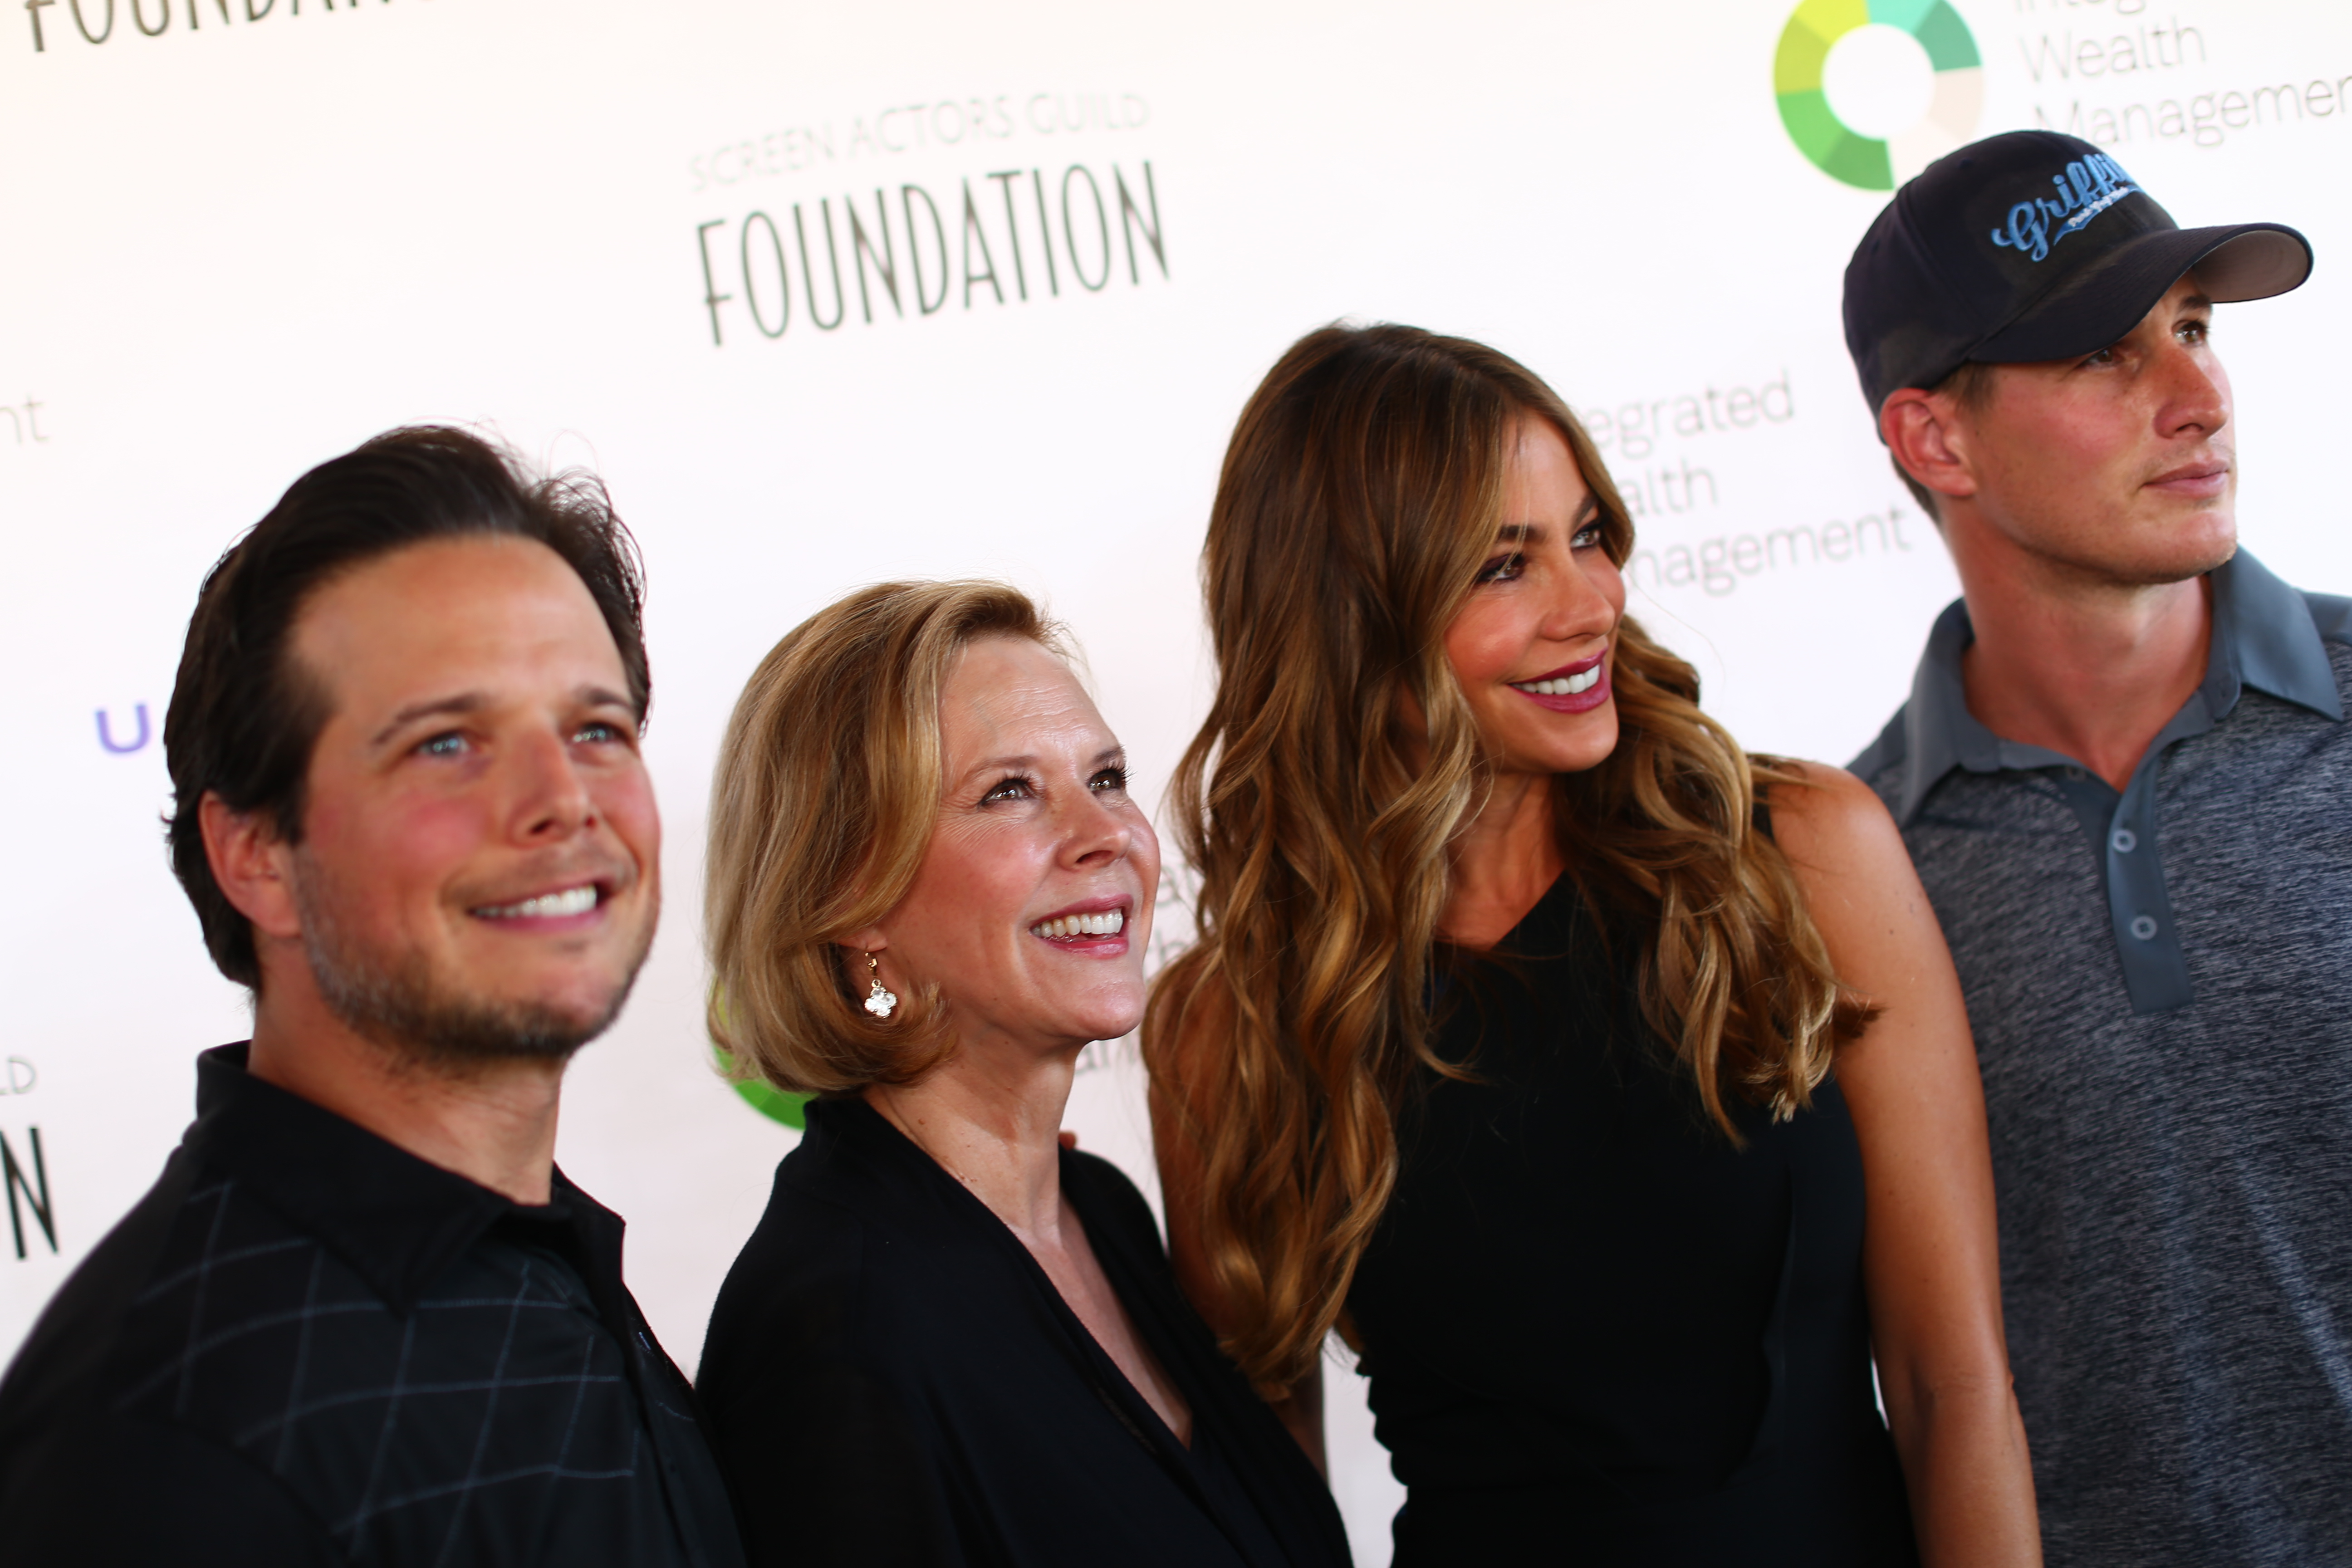 (L-R) Actor Scott Wolf, President of the SAG Foundation JoBeth Williams, actress Sofia Vergara and actor Brendan Fehr attend The Screen Actors Guild Foundation's 6th Annual Los Angeles Golf Classic on June 8, 2015 in Burbank, California.  (Photo by Mark Davis/Getty Images for The Screen Actors Guild Foundation) *** Local Caption *** JoBeth Williams;Brendan Fehr;Sofia Vergara;Scott Wolf